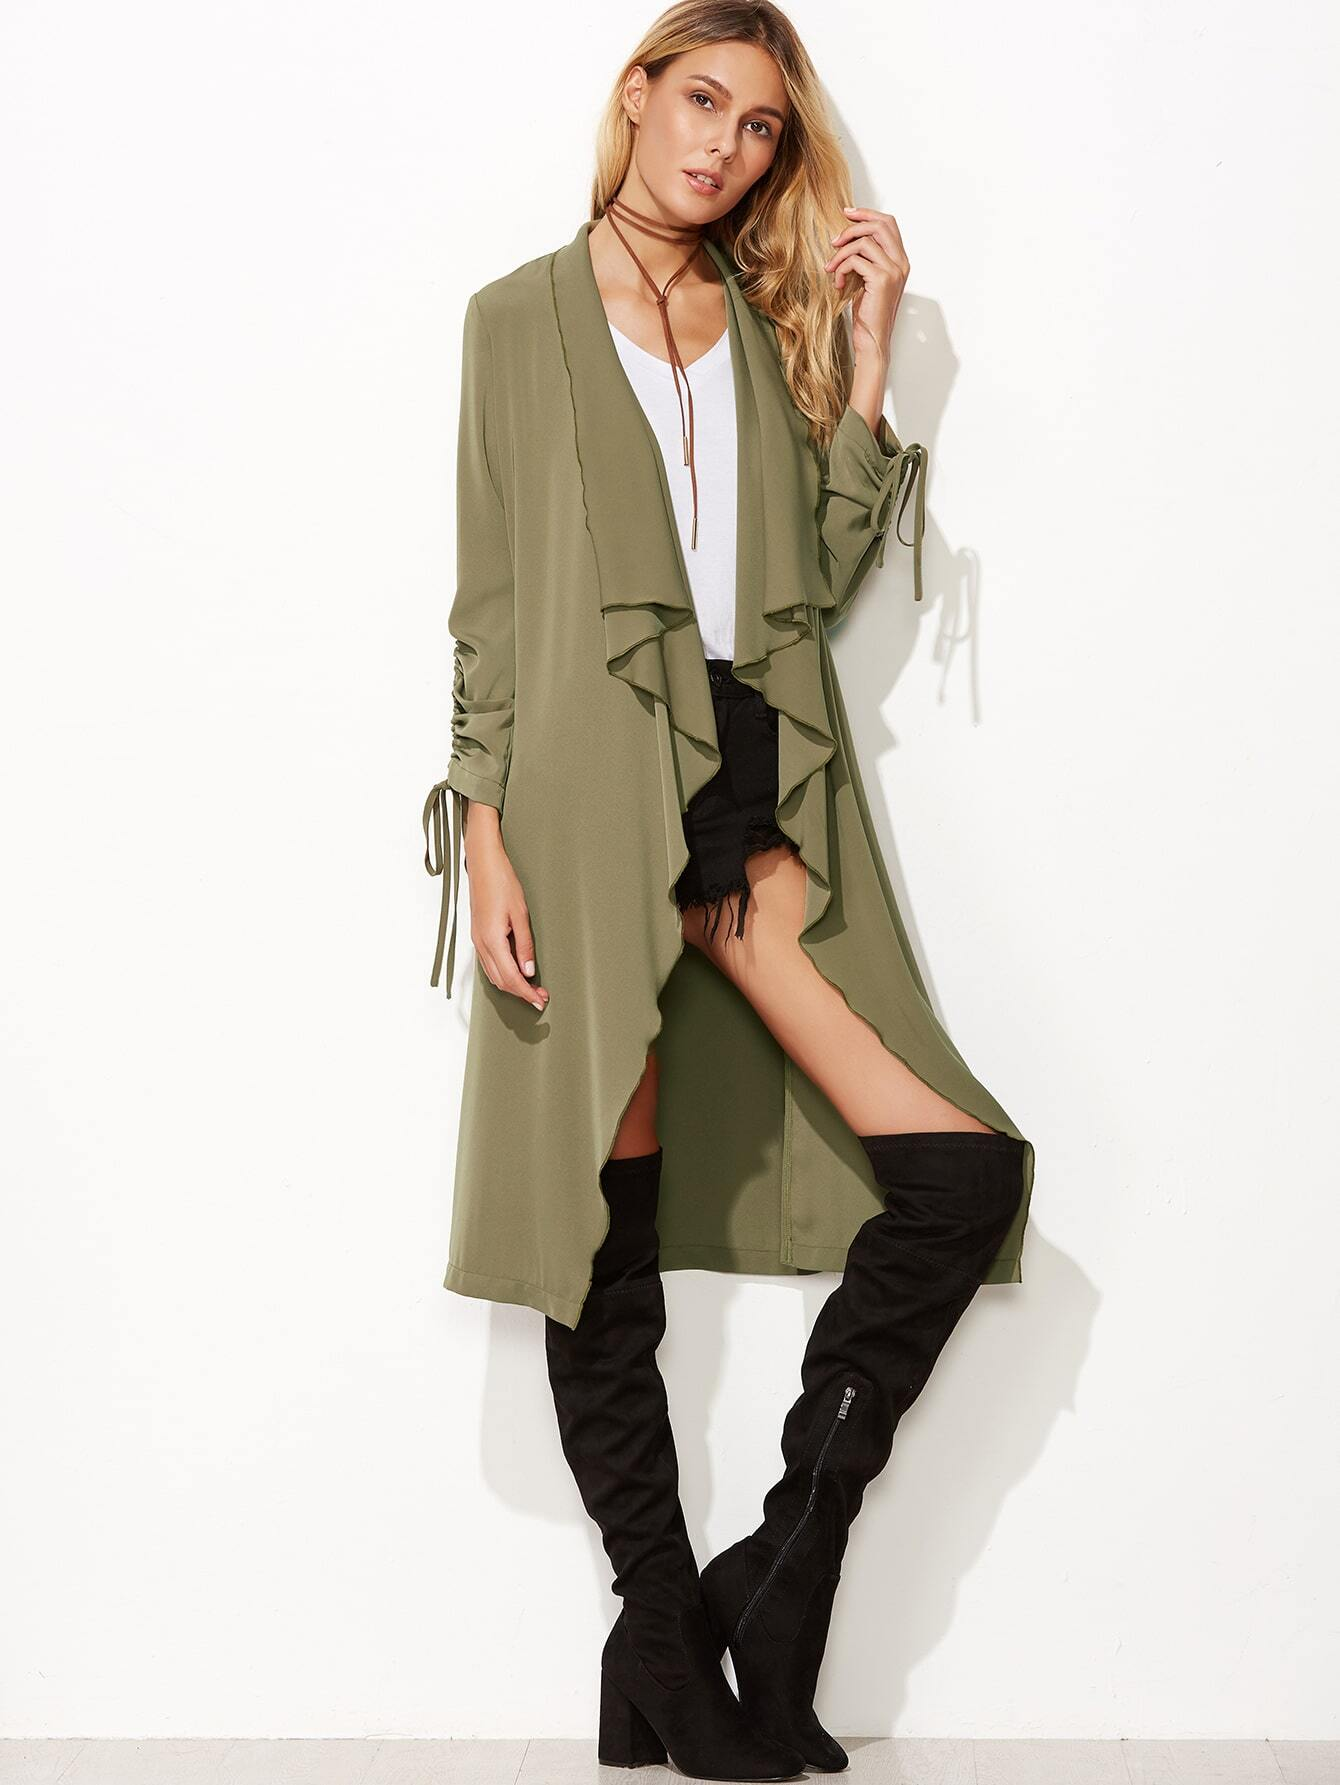 Army Green Waterfall Collar Drawstring Sleeve CoatArmy Green Waterfall Collar Drawstring Sleeve Coat<br><br>color: Green<br>size: L,M,S,XS